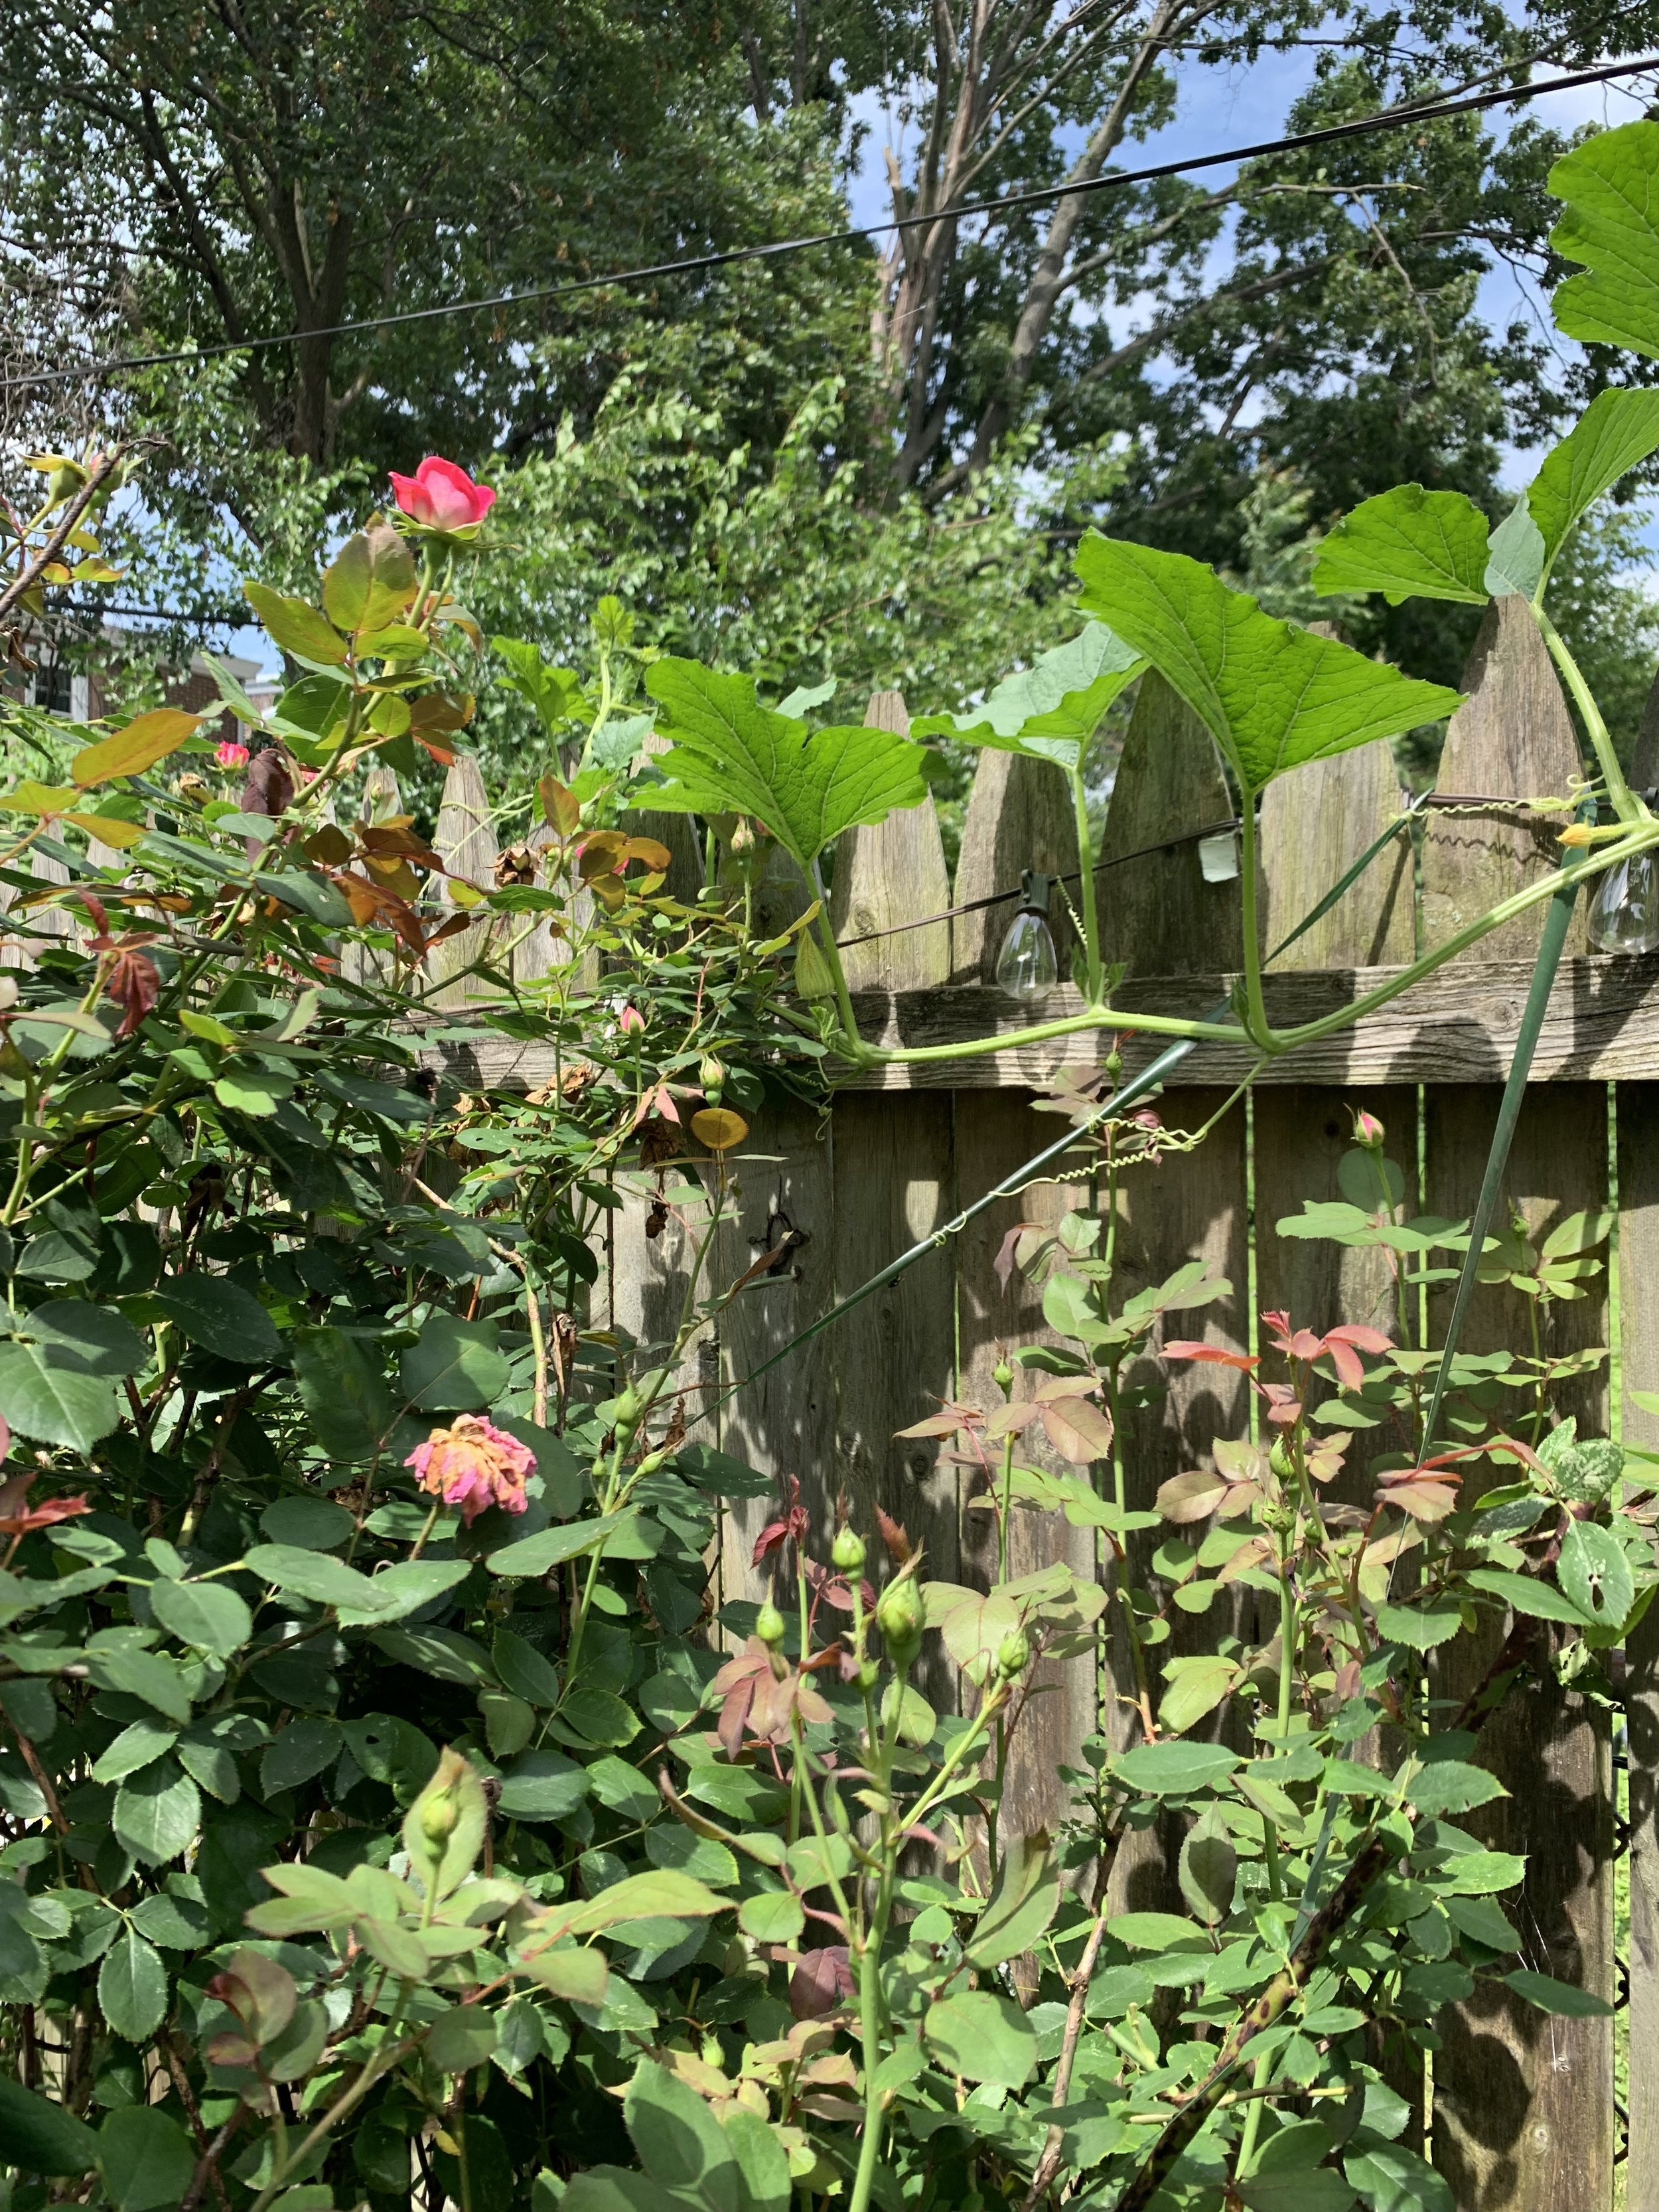 Spaghetti squash trailing along my wooden fence, happily thriving above the rose bushes